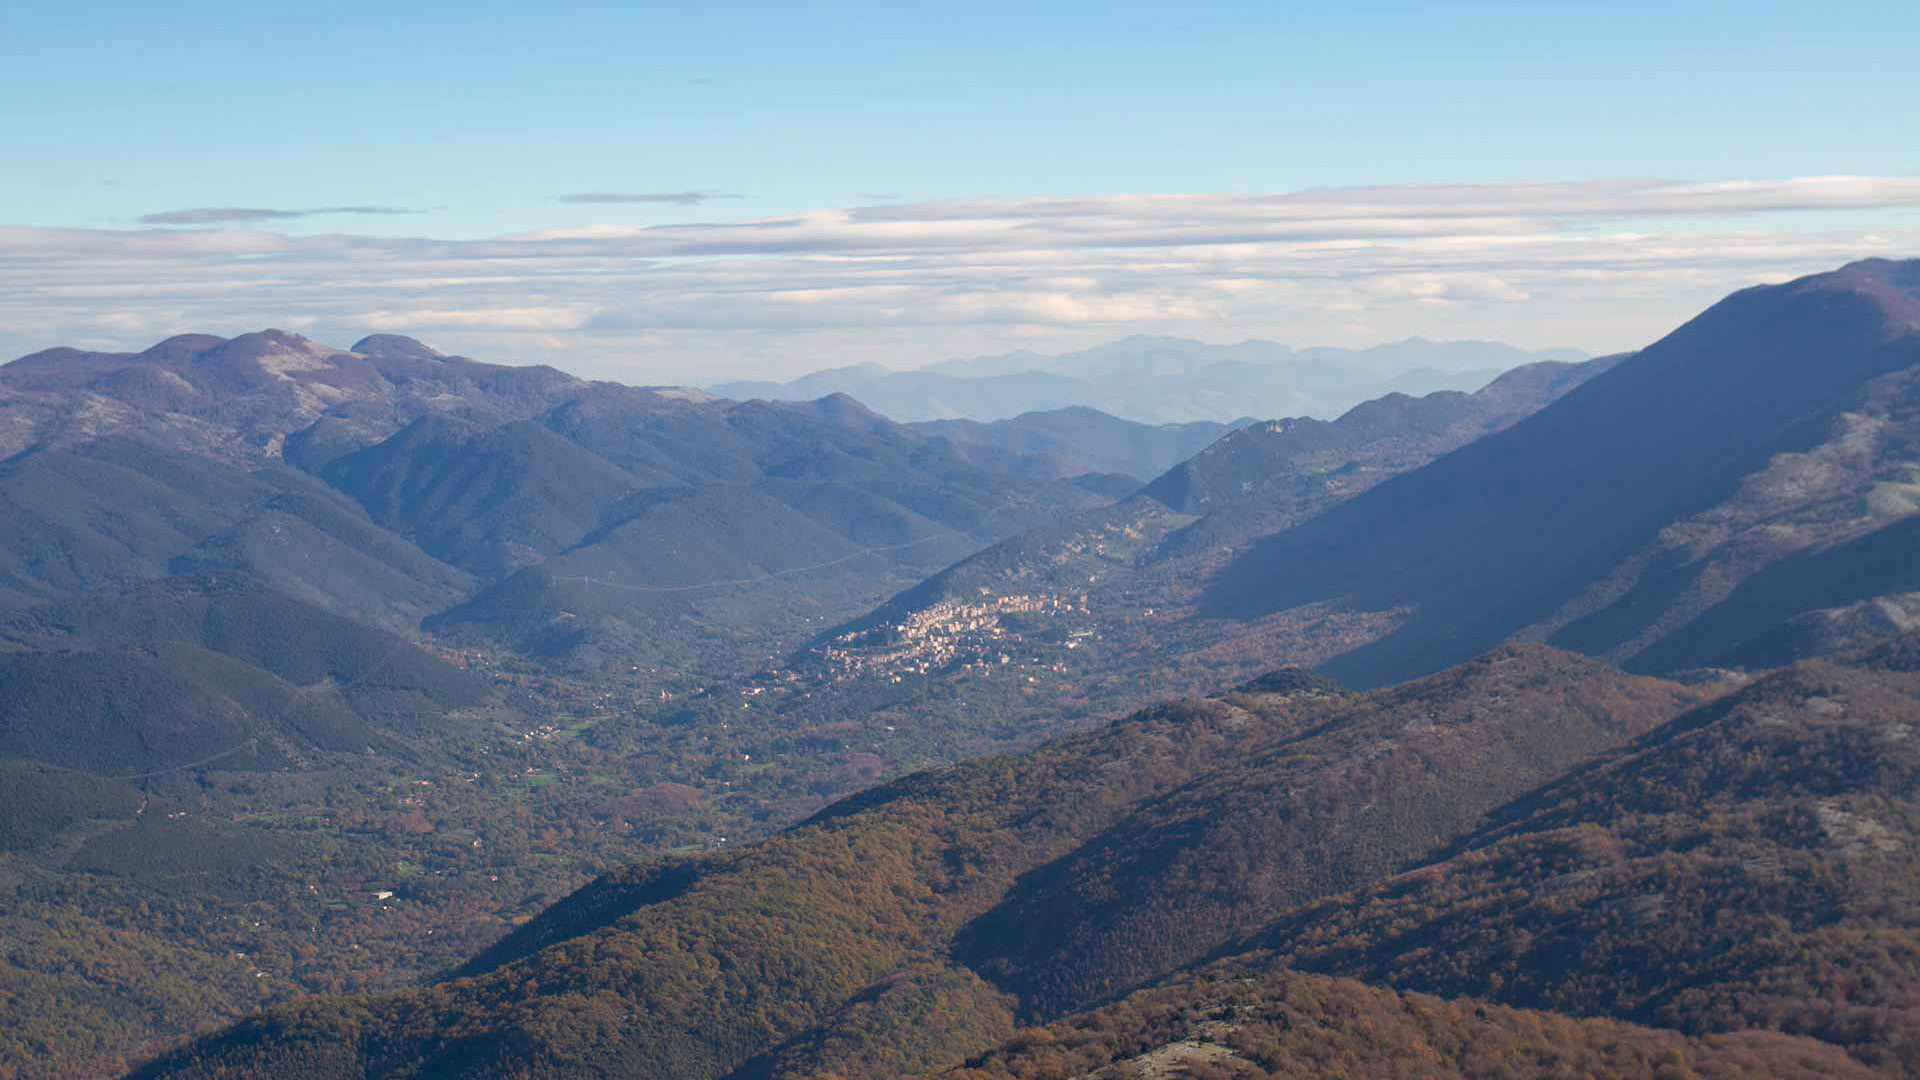 Monte Lupone